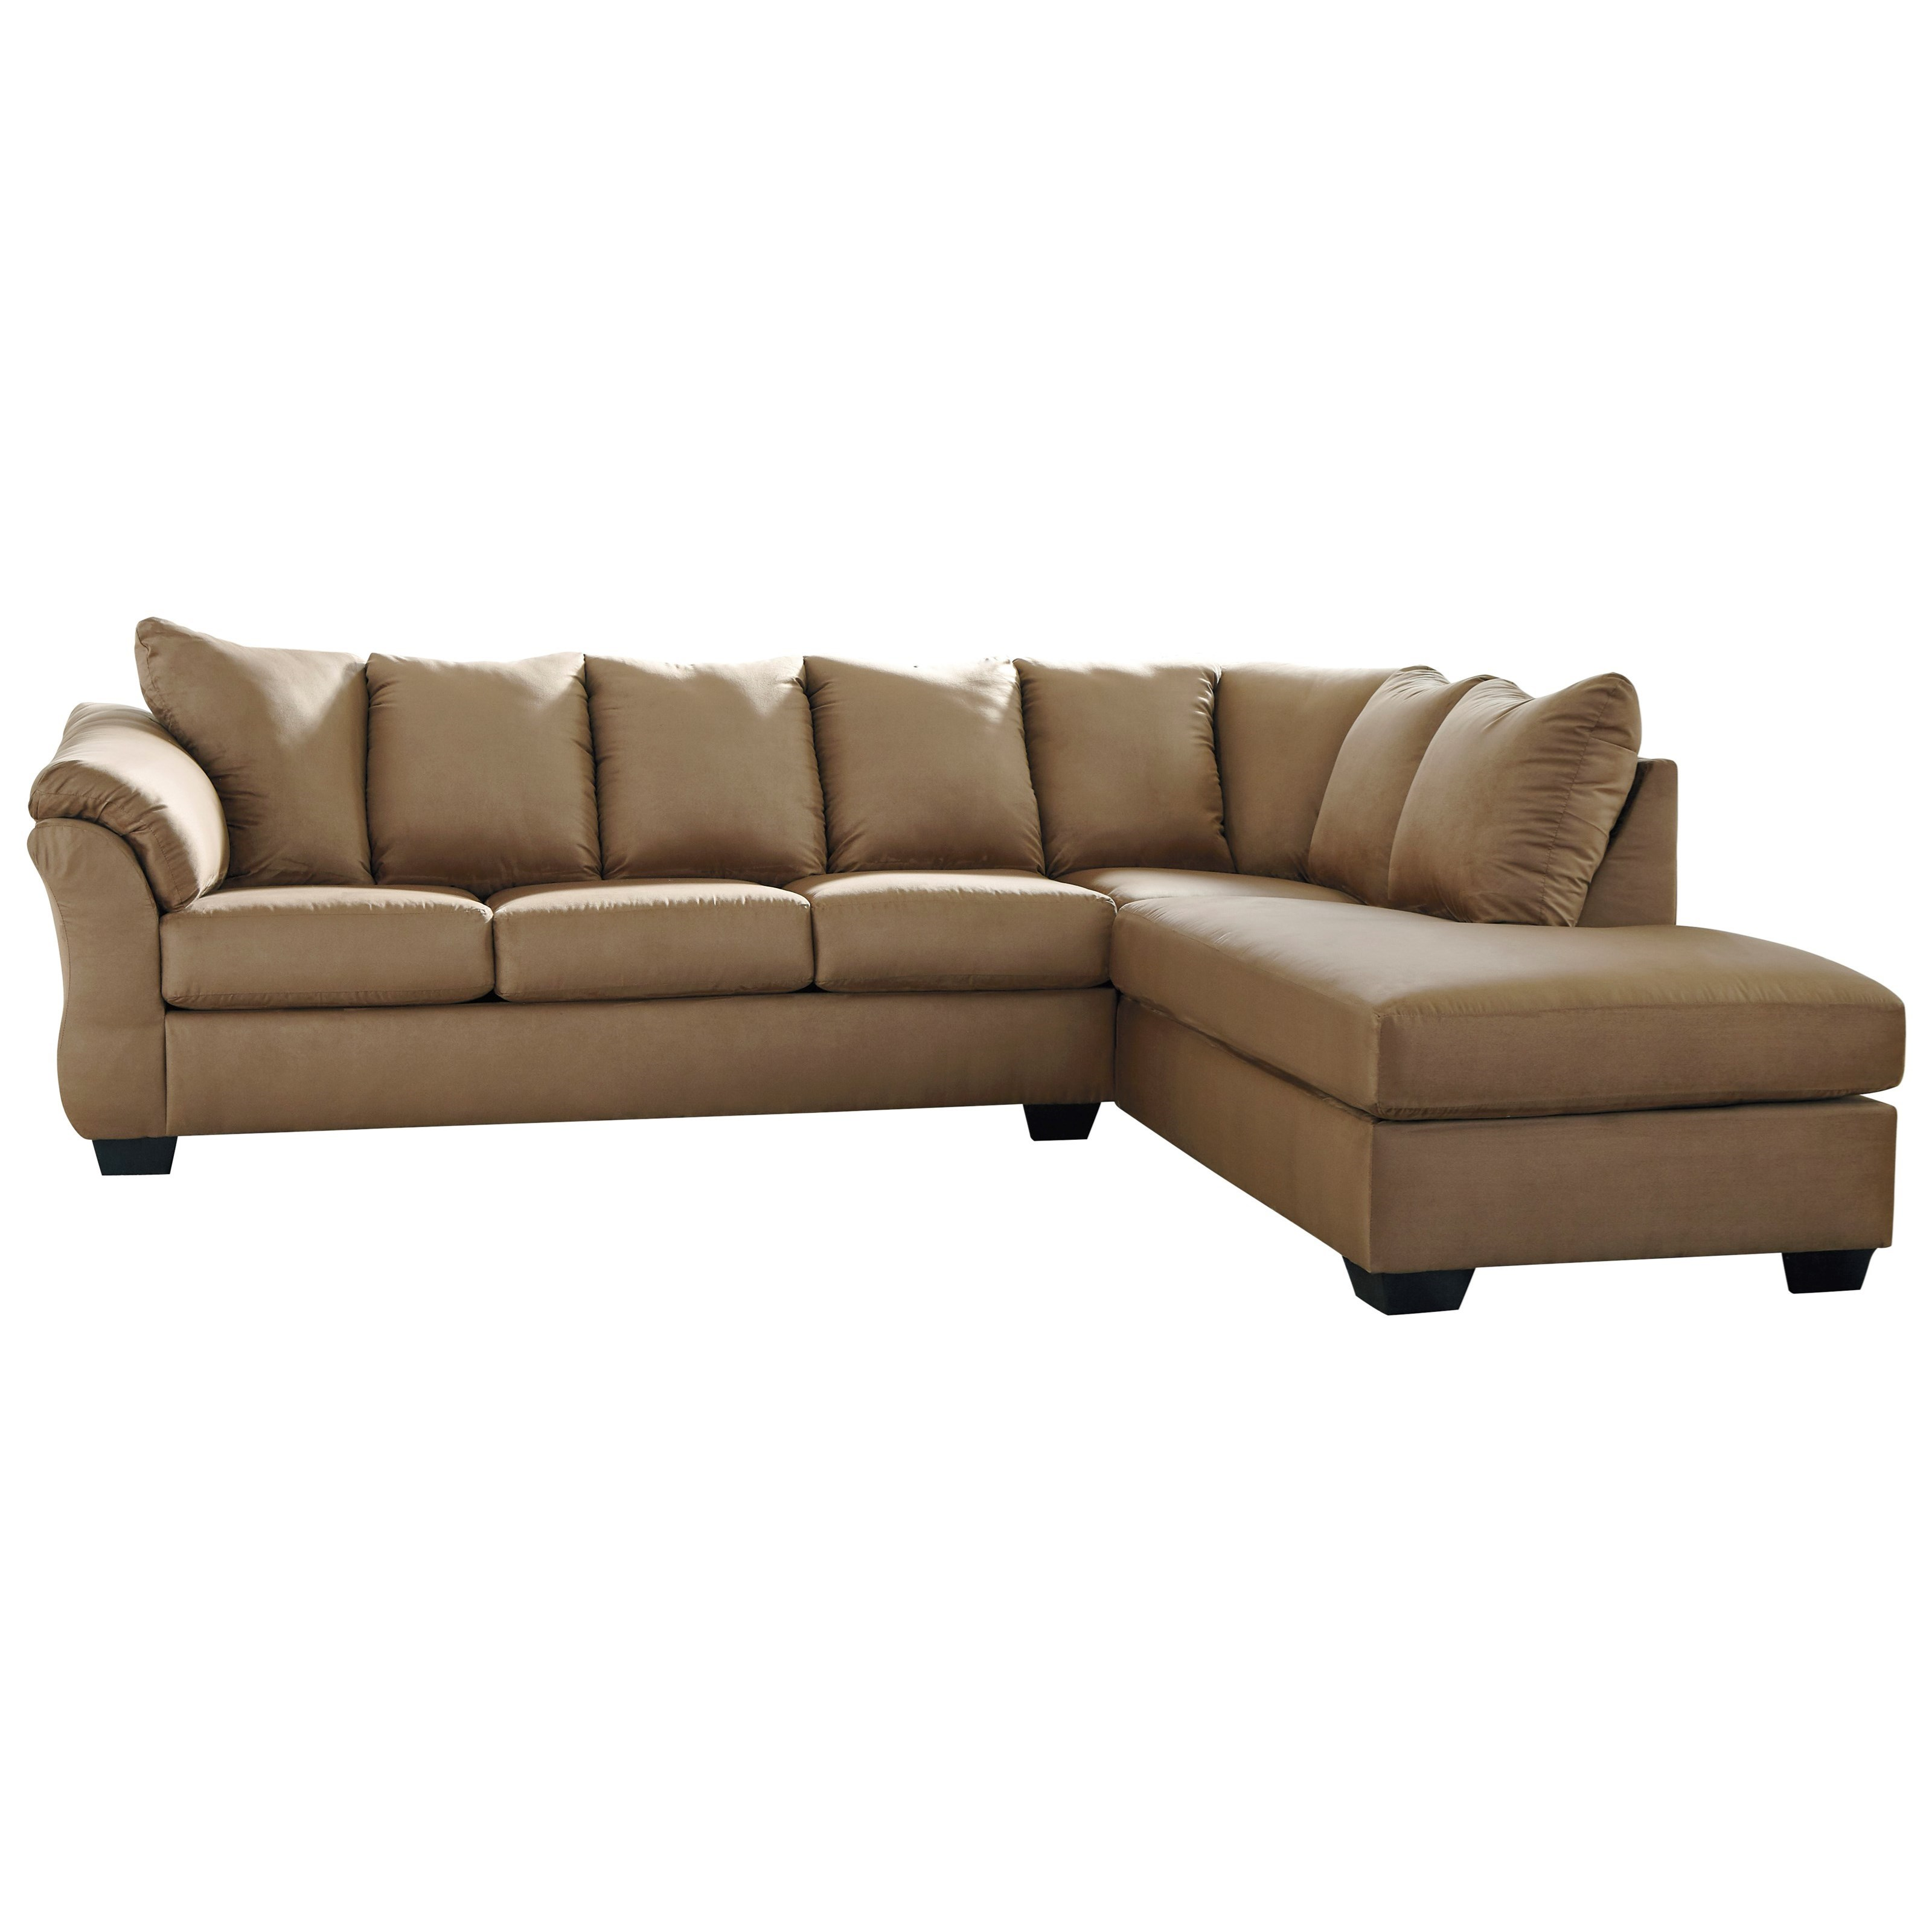 Darcy - Mocha 2-Piece Sectional Sofa by Signature Design by Ashley at Catalog Outlet